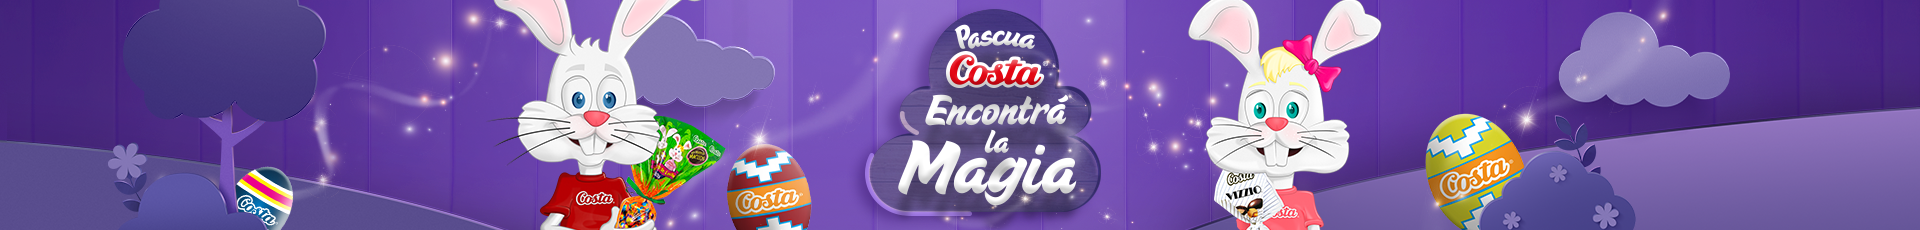 /Pascua_costa?utm_source=WEB&utm_medium=banner%20catalogo%20superior&utm_campaign=pascua_costa